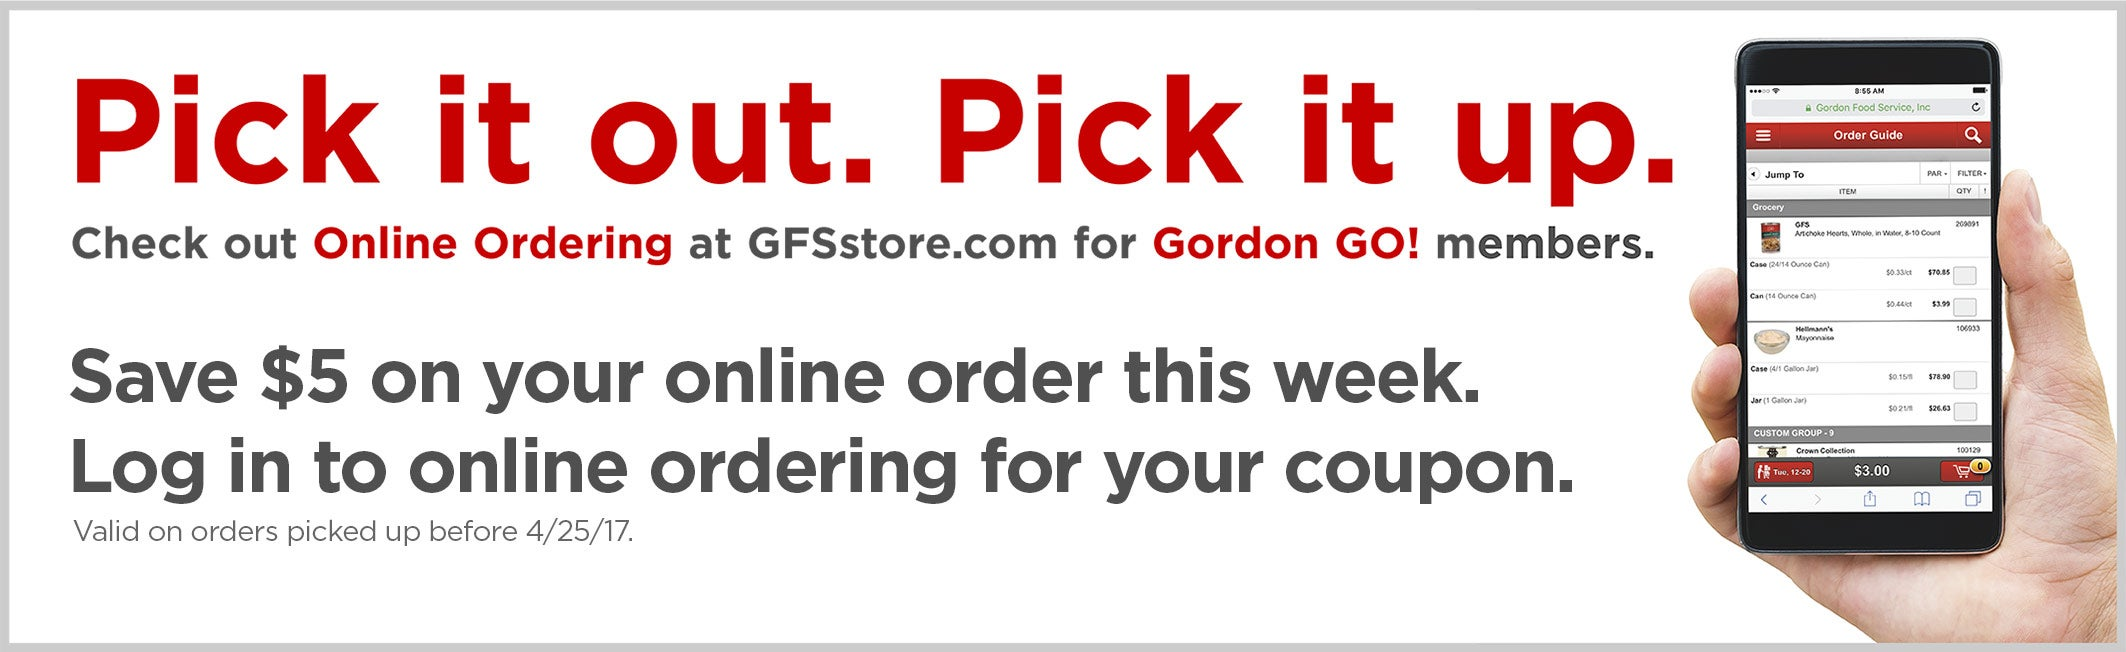 Save $5 on your online order this week. Log in to online ordering for your coupon.